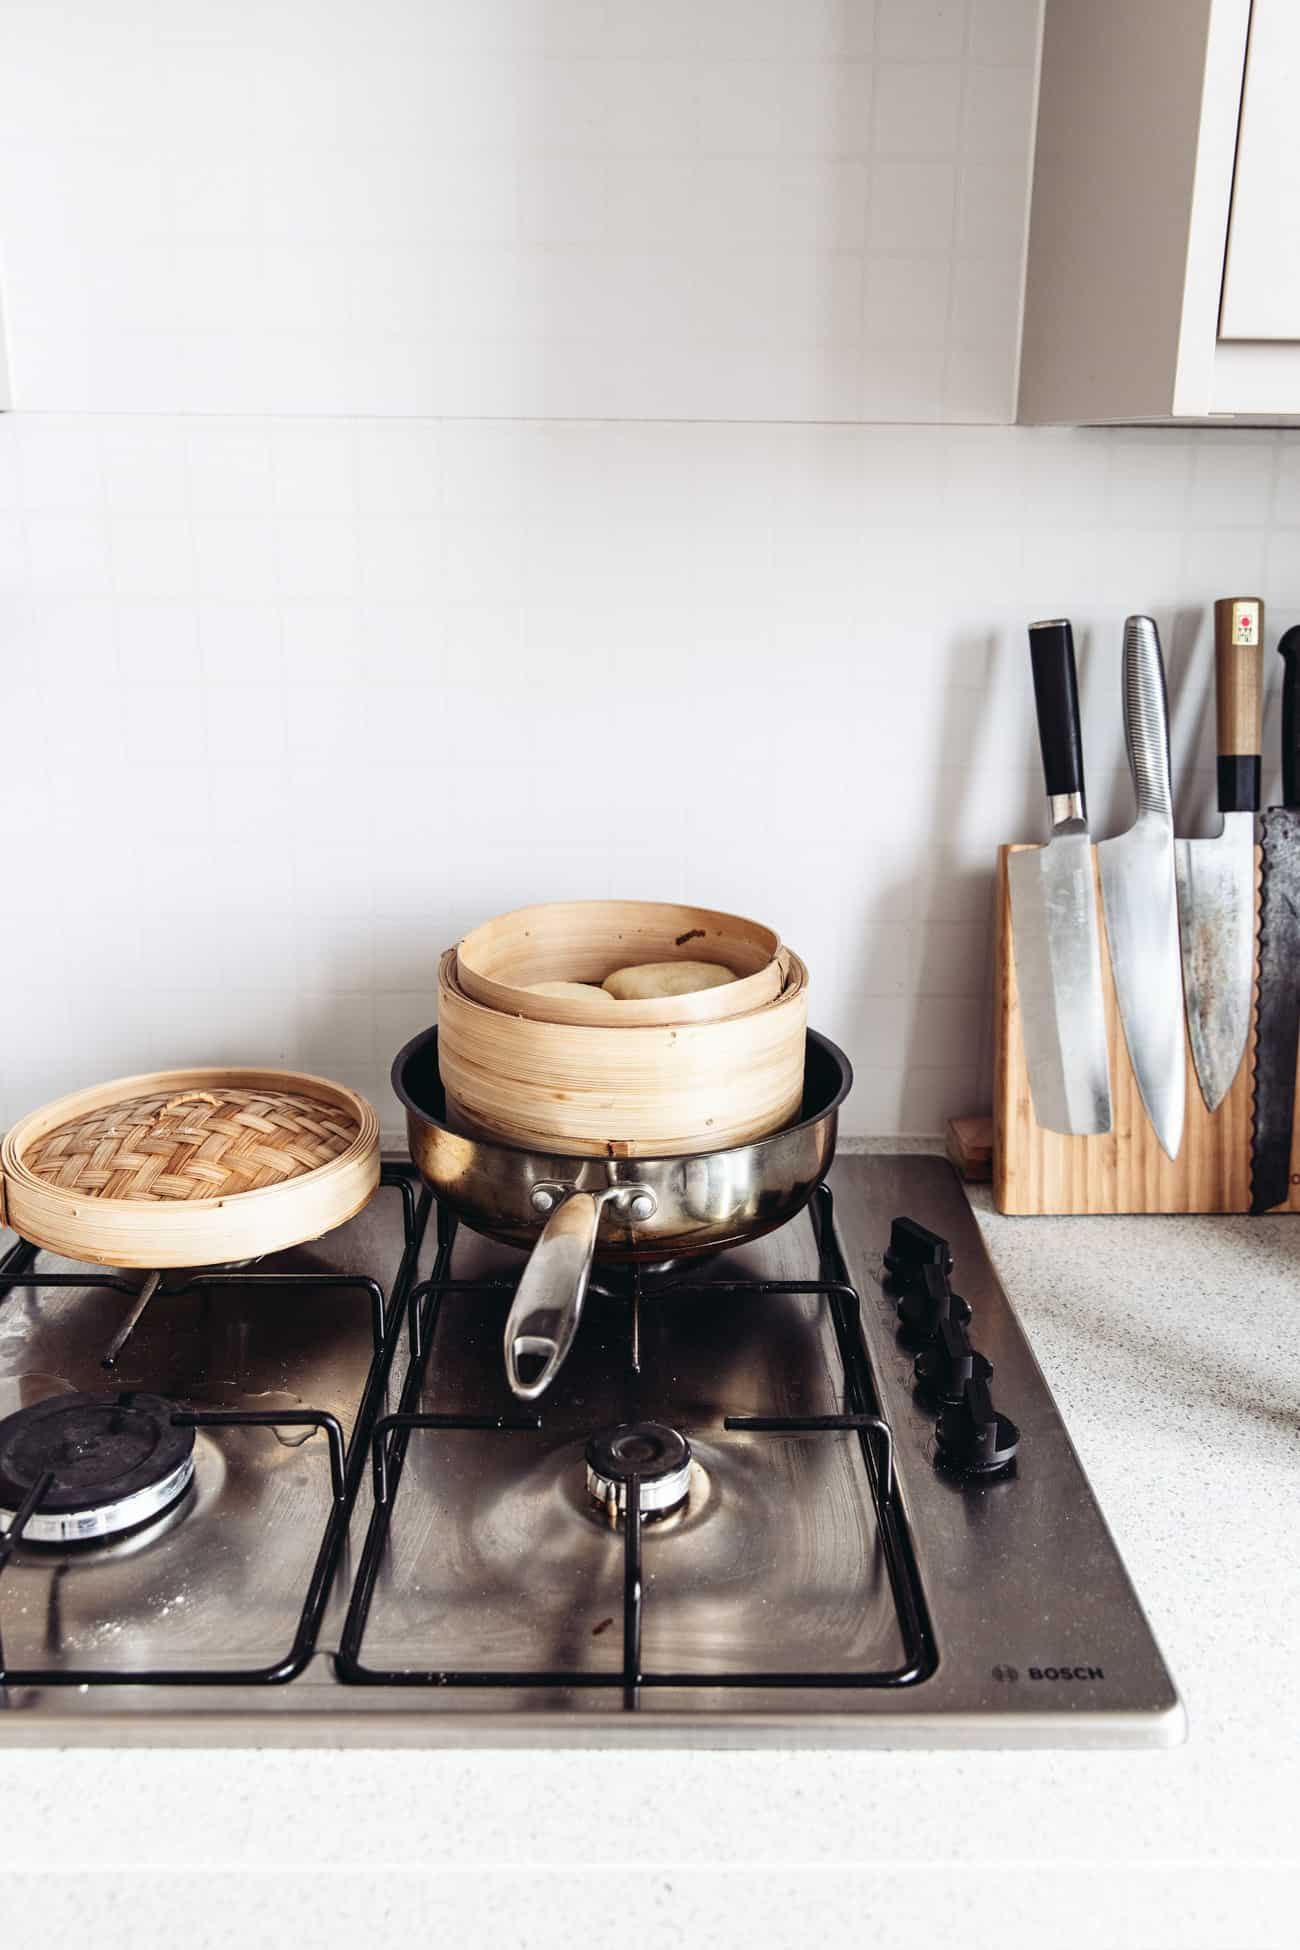 A bamboo steamer with bao buns in a pan on the stove